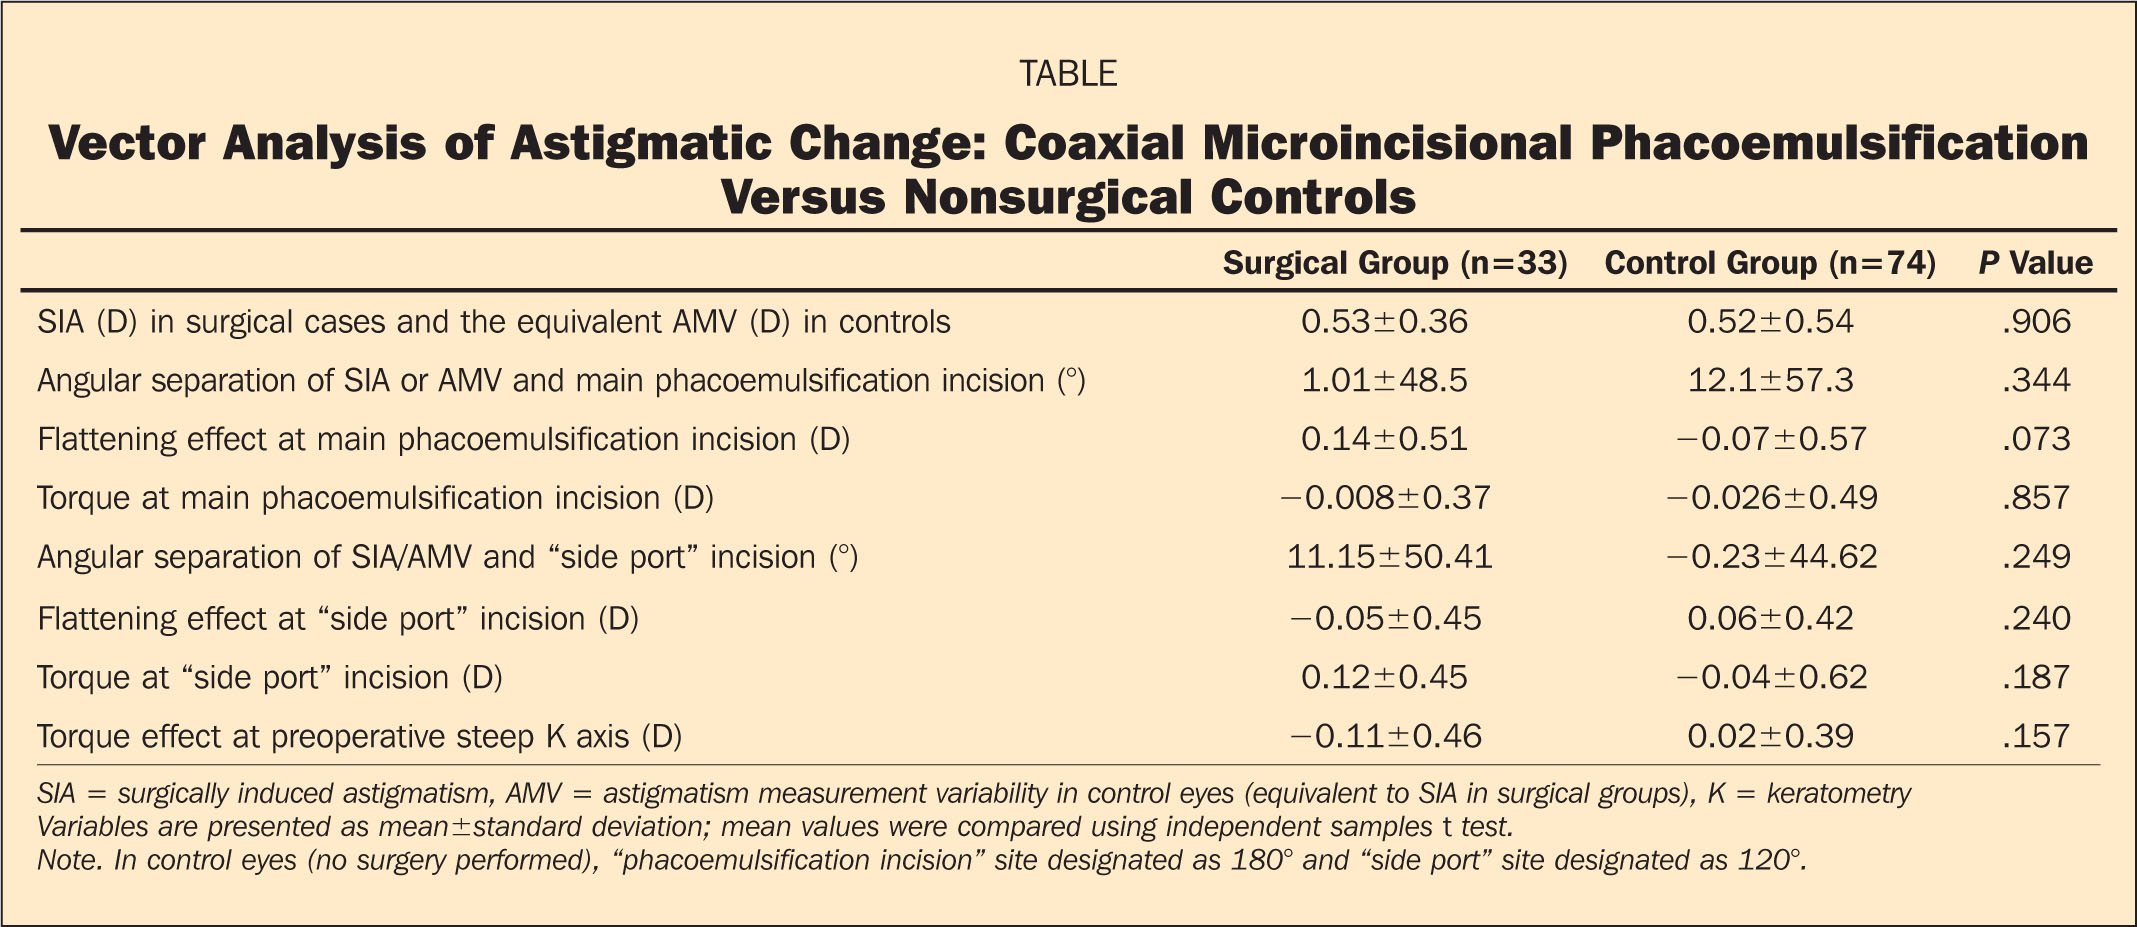 Vector Analysis of Astigmatic Change: Coaxial Microincisional Phacoemulsification Versus Nonsurgical Controls